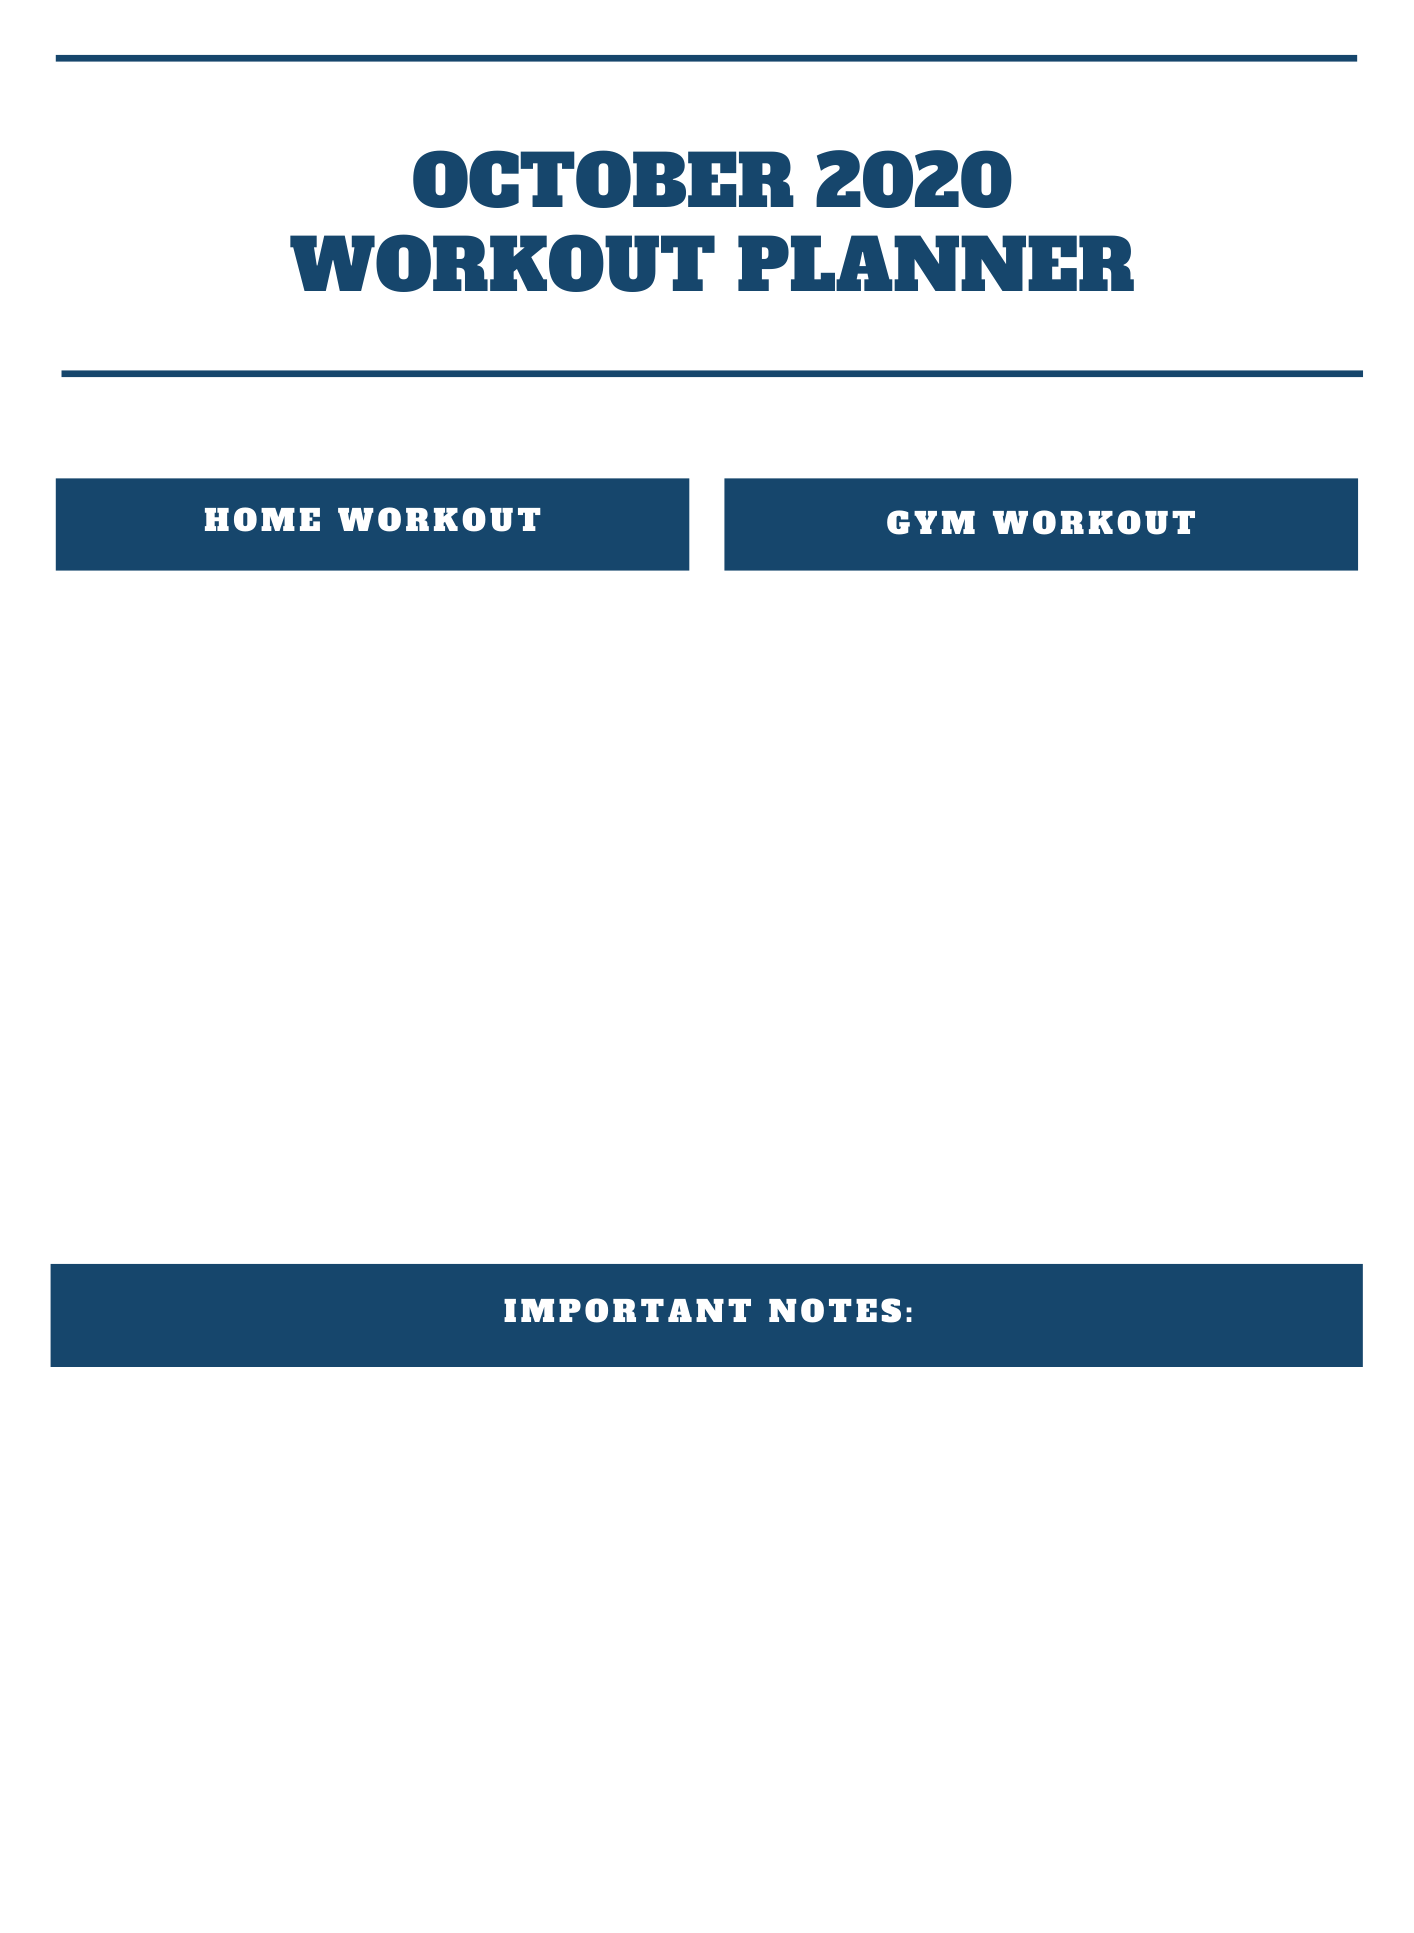 October 2020 Workout Planner